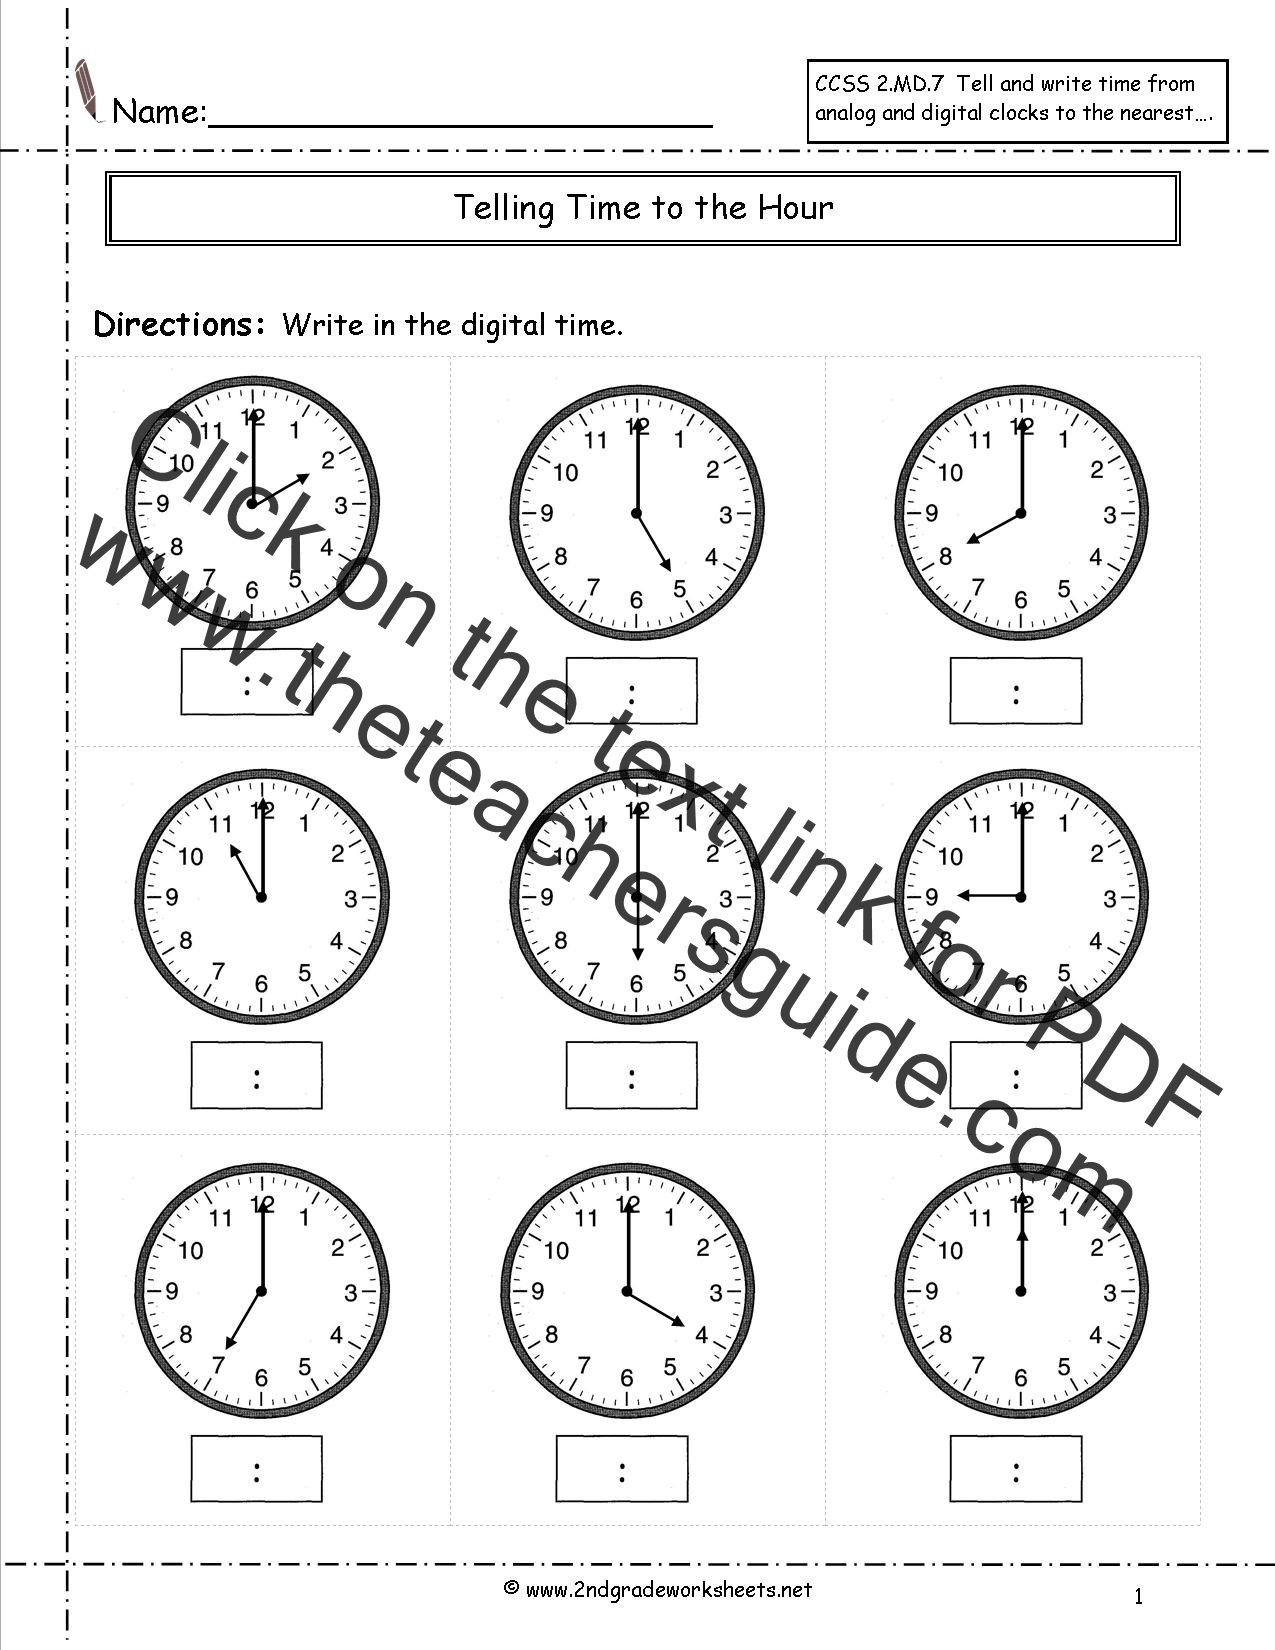 Elegant Telling Time To The Nearest Hour Worksheet 2